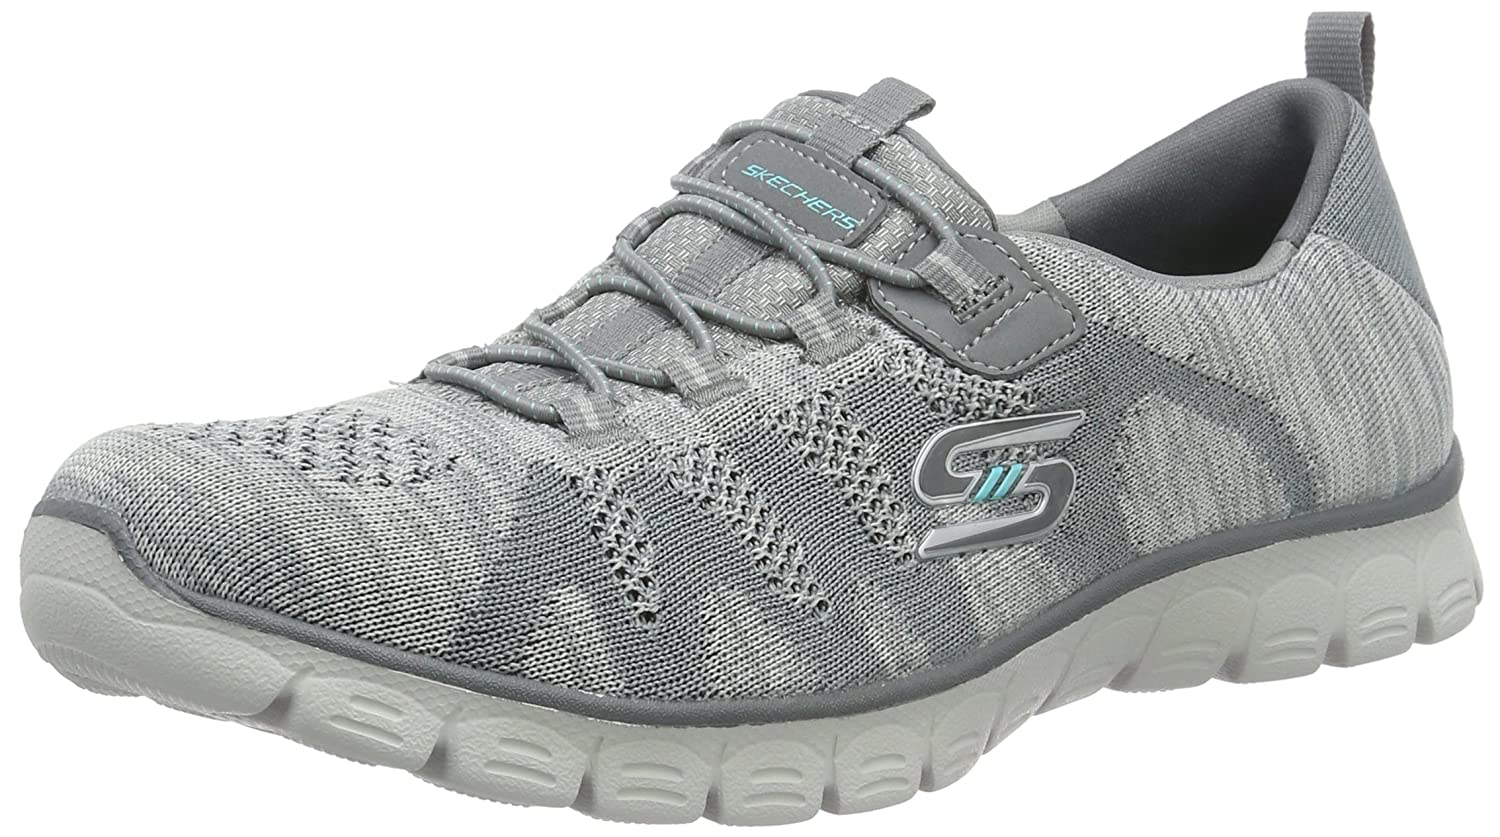 Skechers Women's Sport-Active Ez Flex 3.0 Take-The-Lead Sneaker B01BHRTNVQ 7 B(M) US|Gray